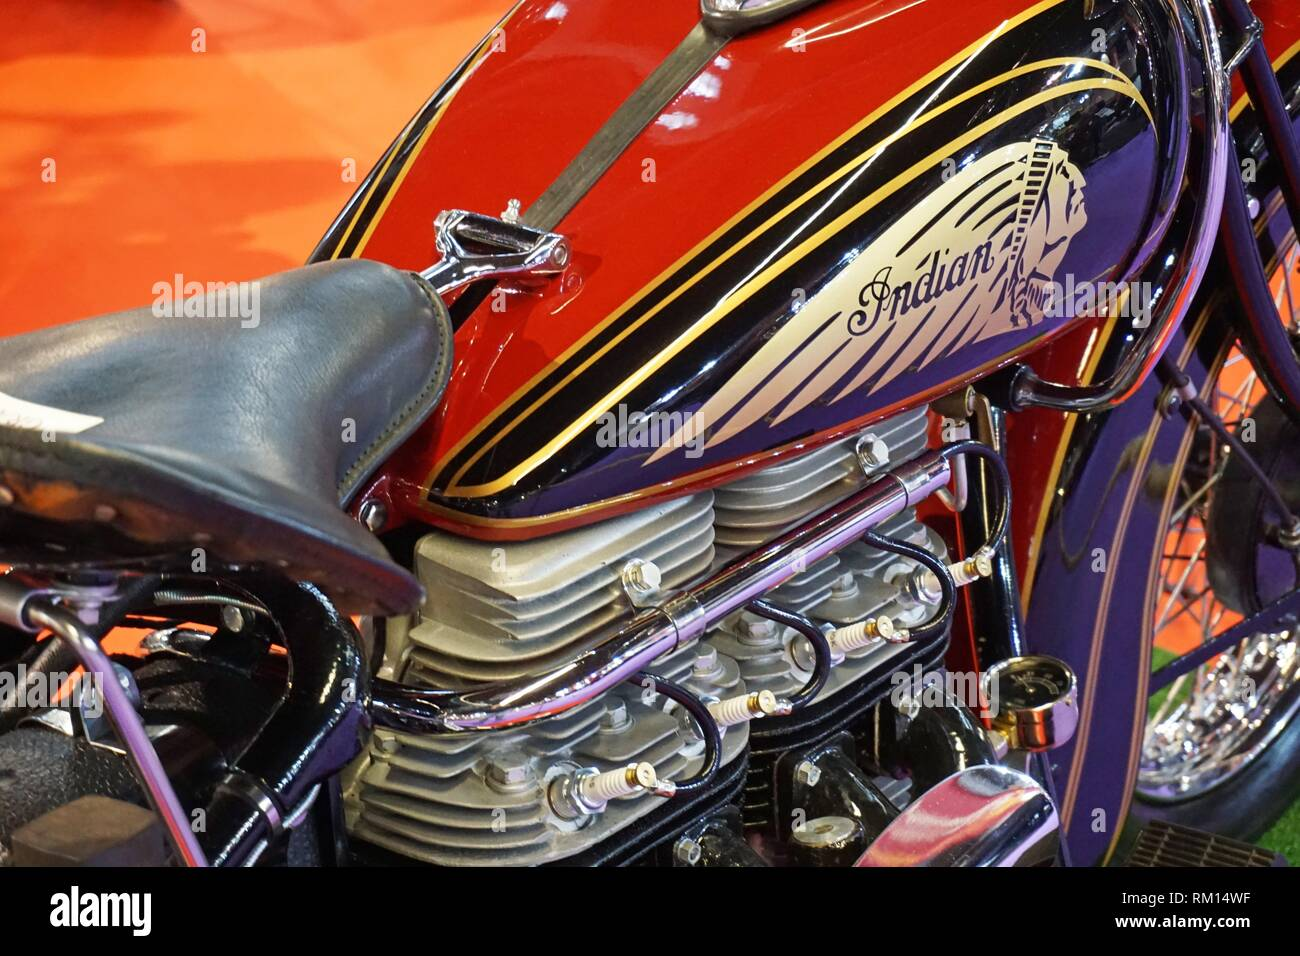 Late 1930s Indian Scout motorcycle. Autoretro Barcelona, Barcelona, Catalonia, Spain, Europe. - Stock Image